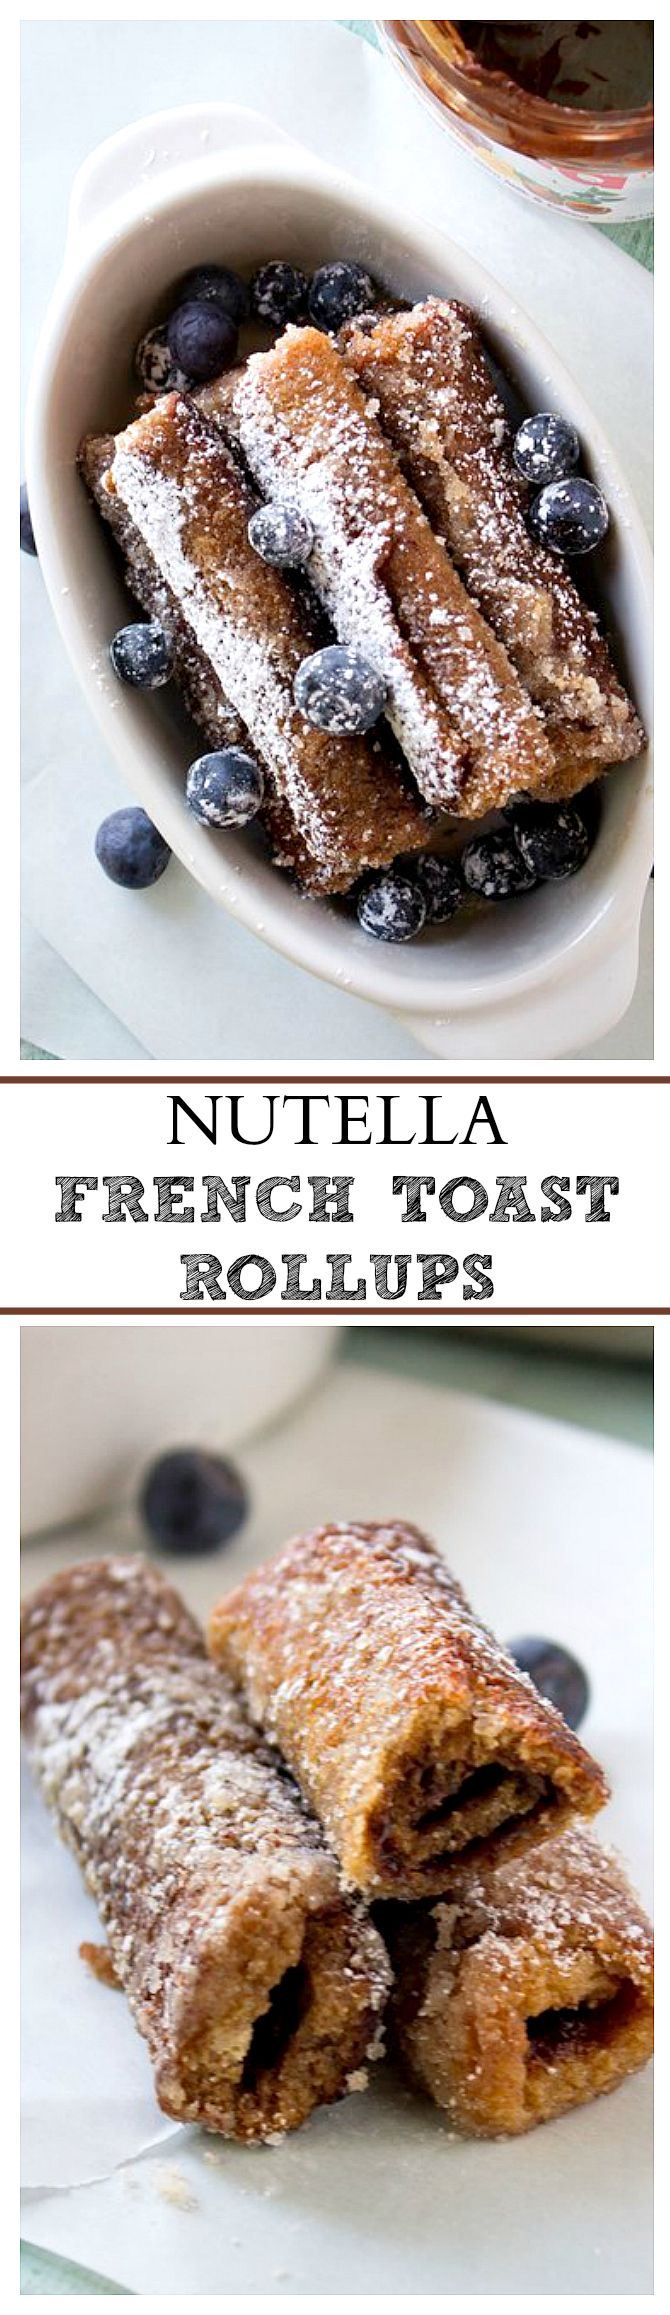 Nutella French Toast Rollups